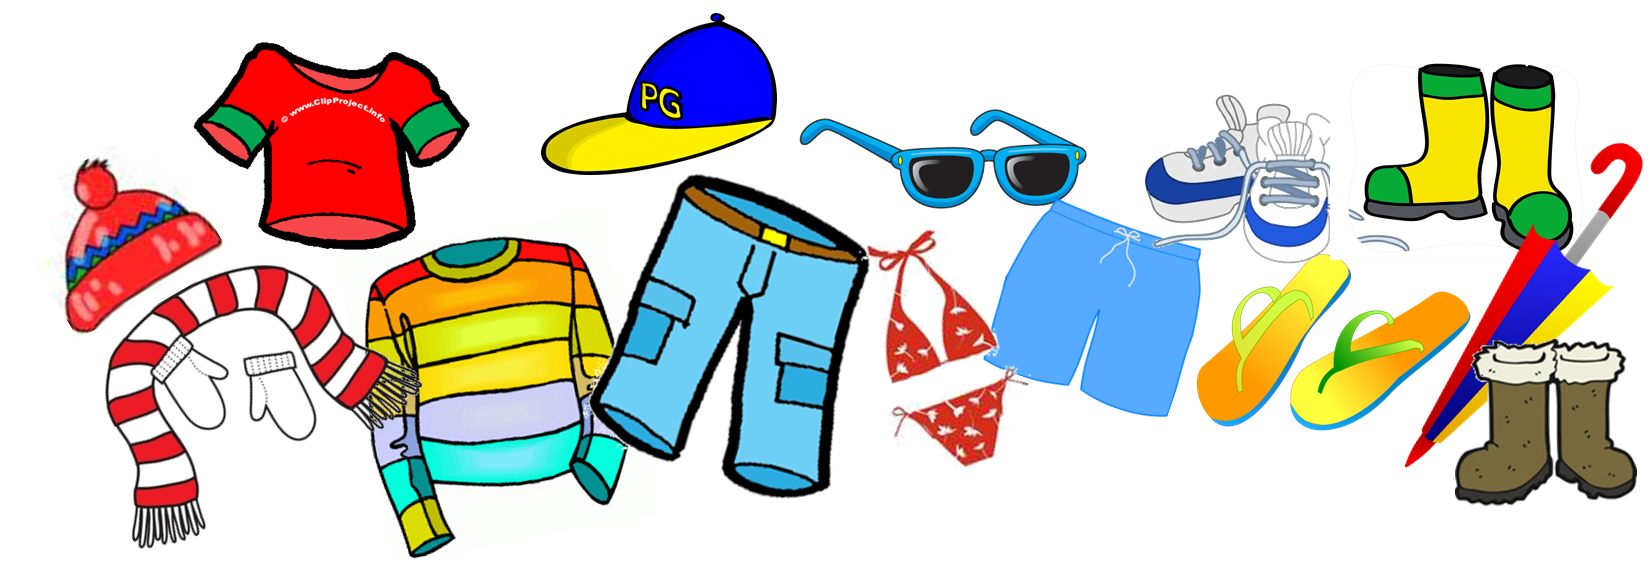 royalty free Images image group things. Clothing clipart old clothes.